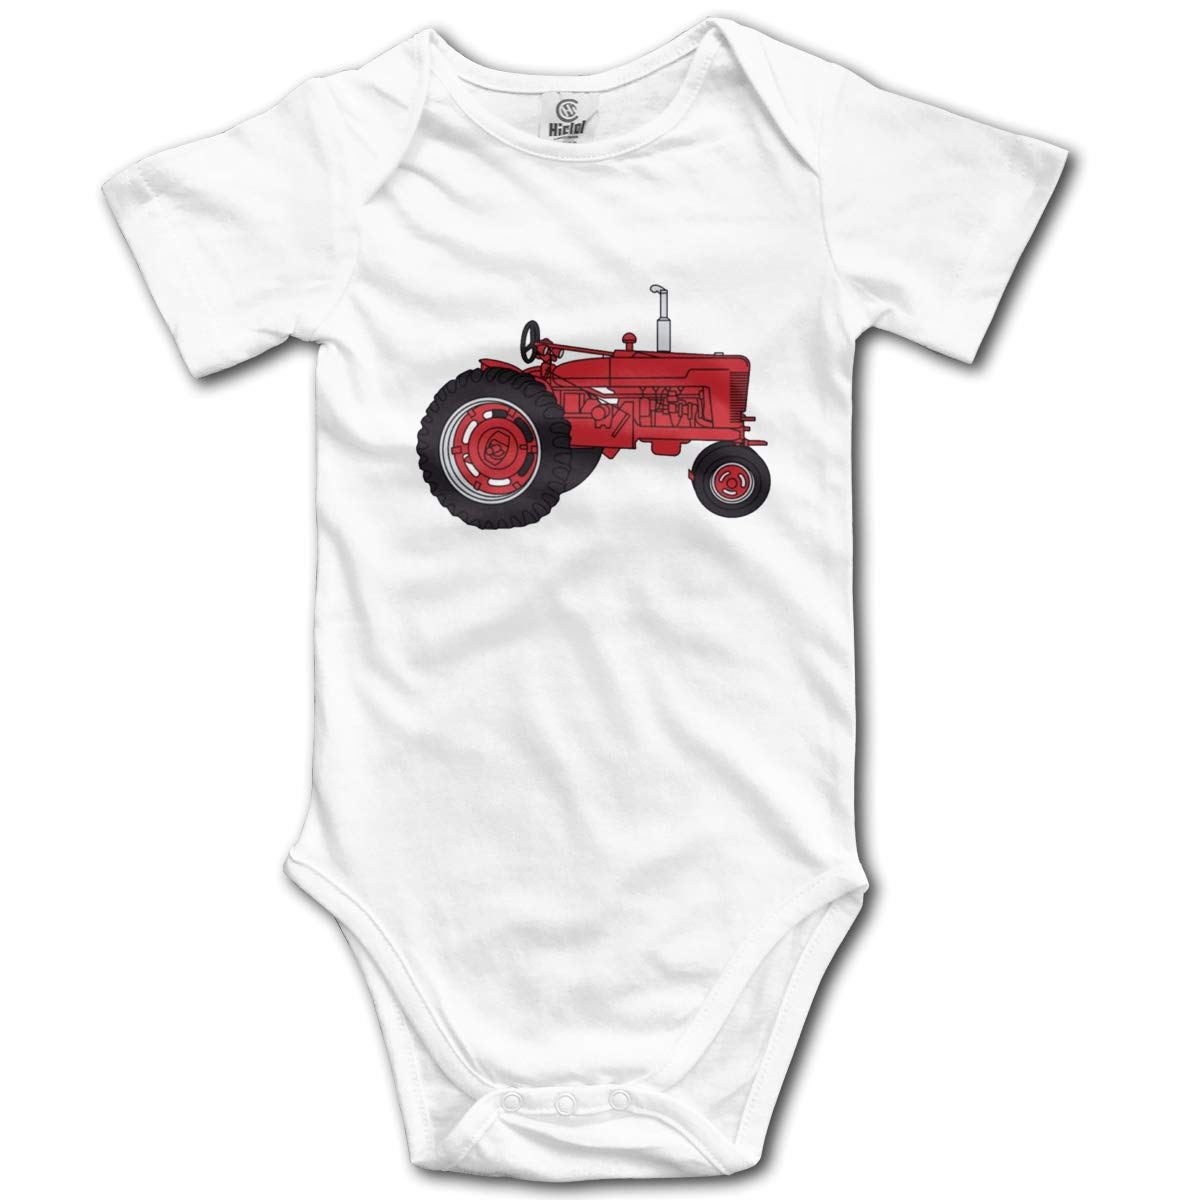 Red Tractor Baby Romper 0-18 Months Newborn Baby Girls Boys Layette Rompers Black